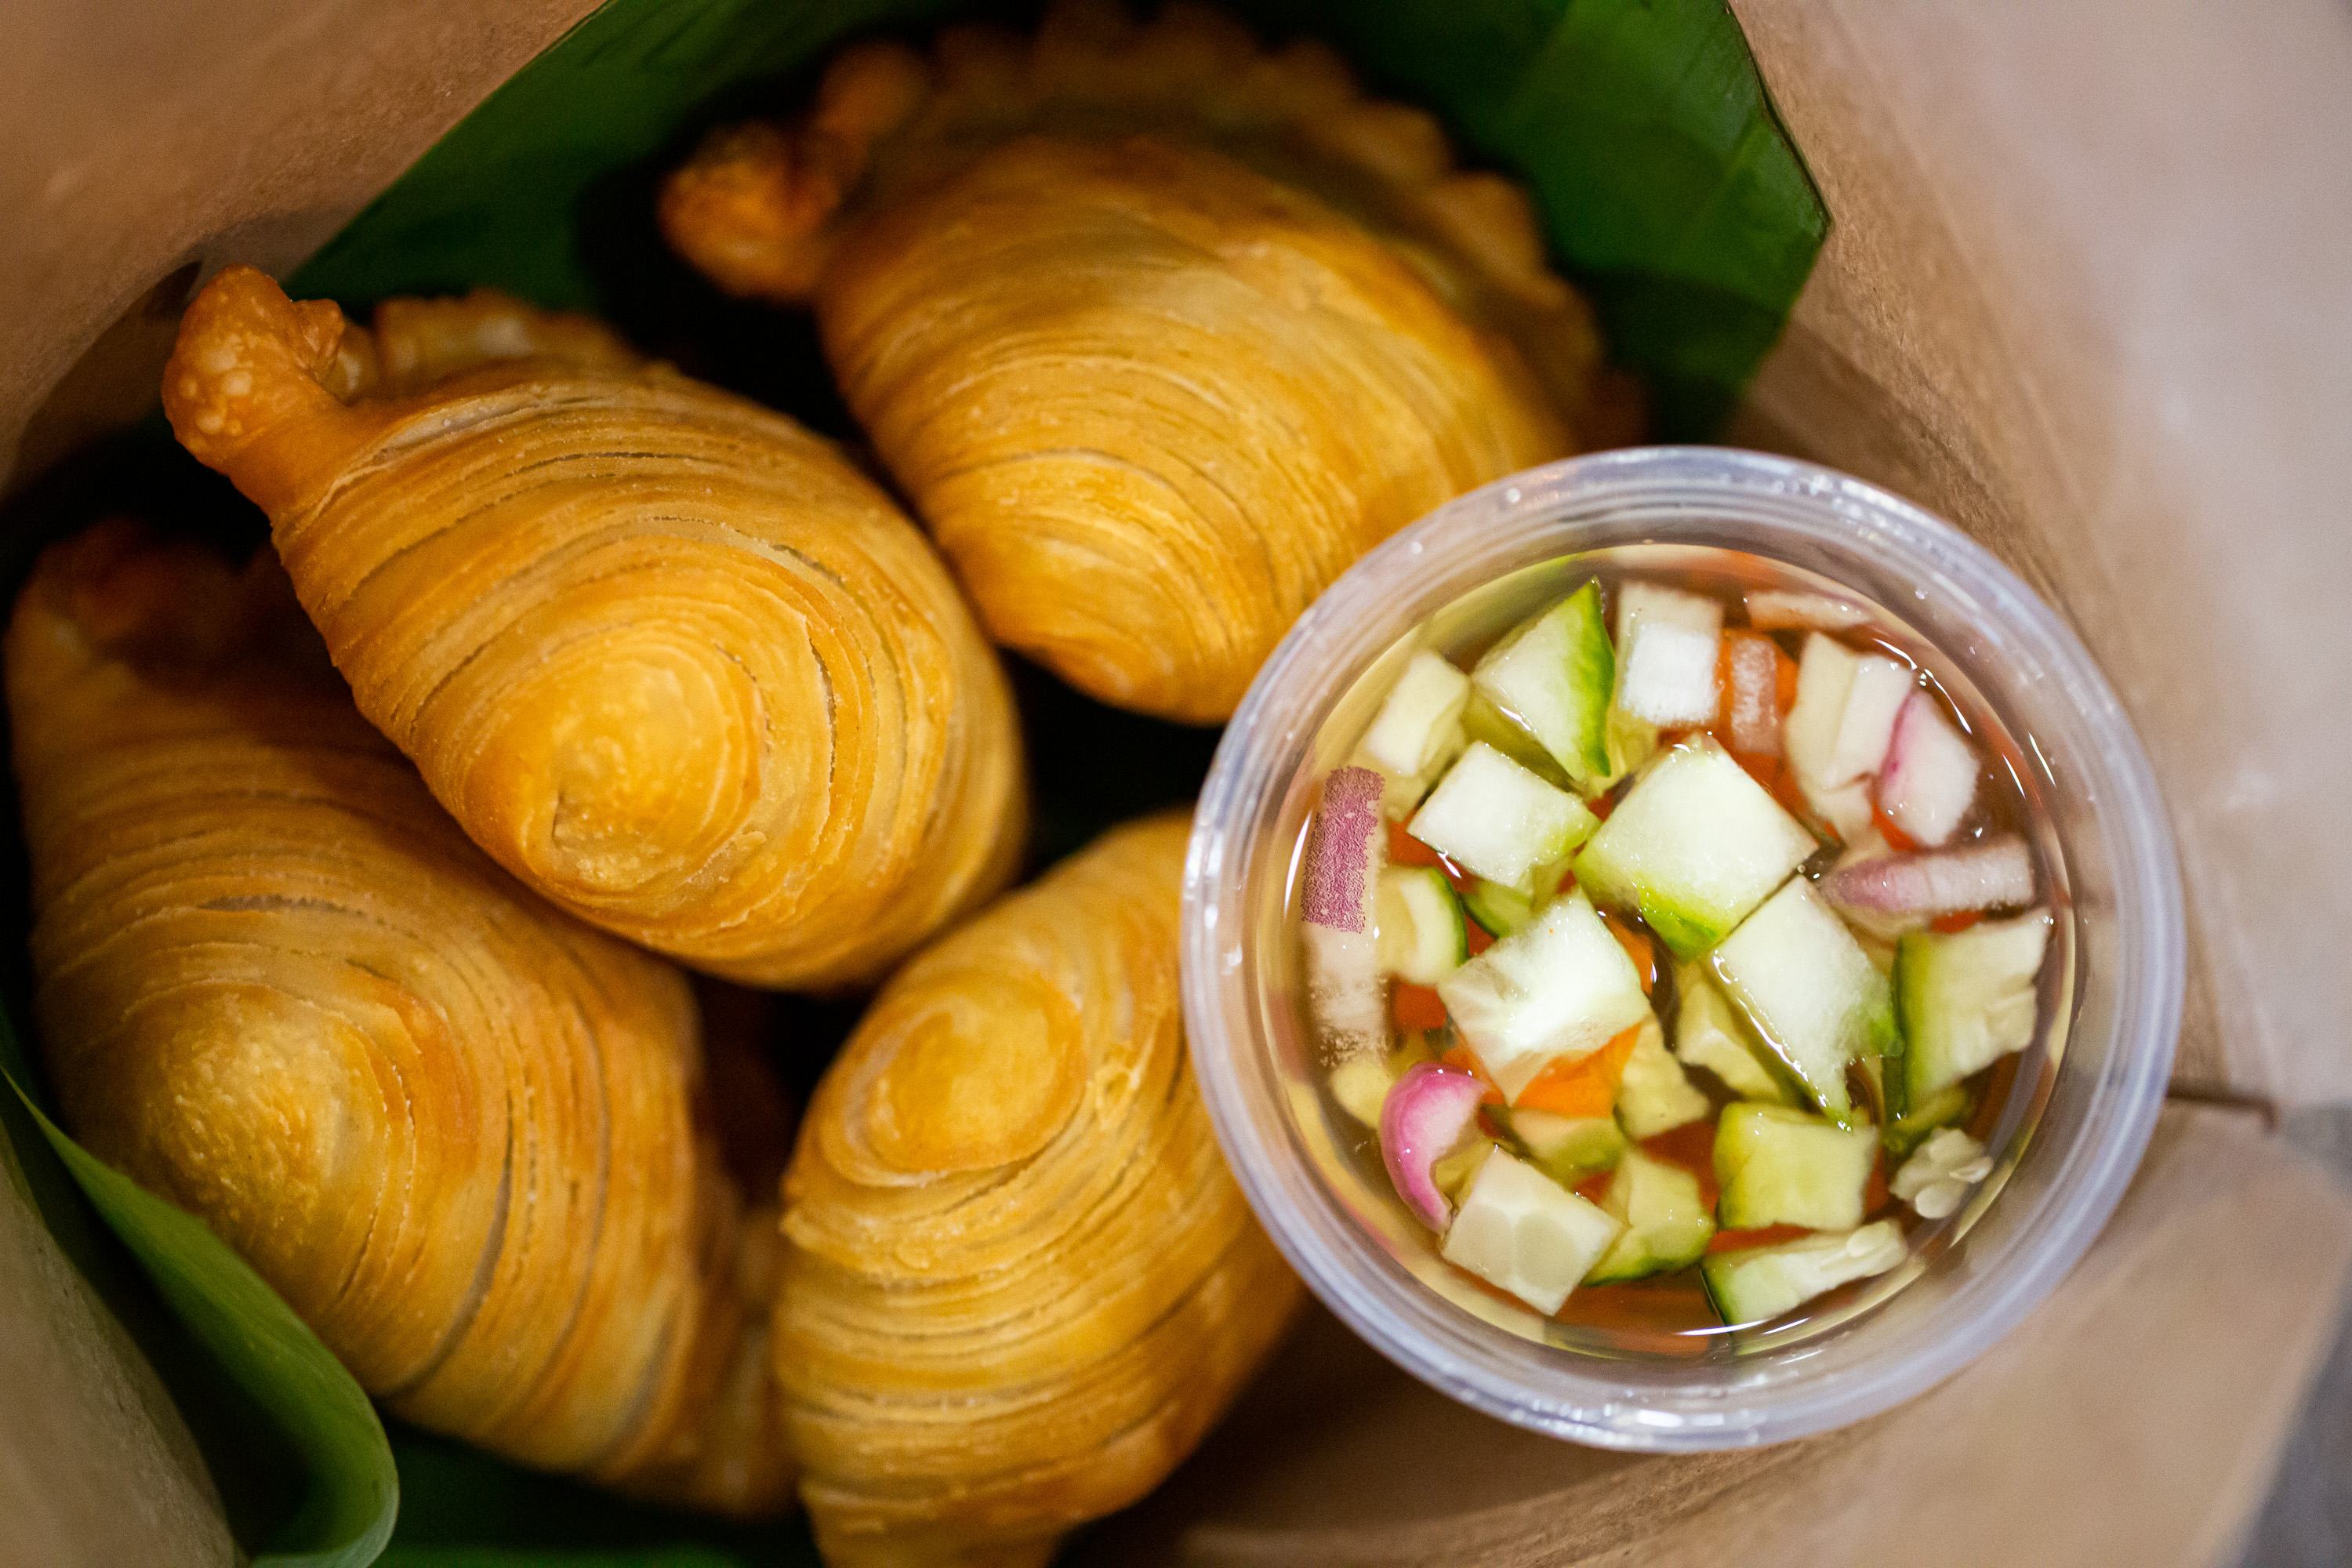 Curry Puff- Puffed pastries filled with minced chicken, sweet potatoes, onions, and curry powder w/ a side of cucumber salad in sweet vinaigrette from TydeTate Kitchen